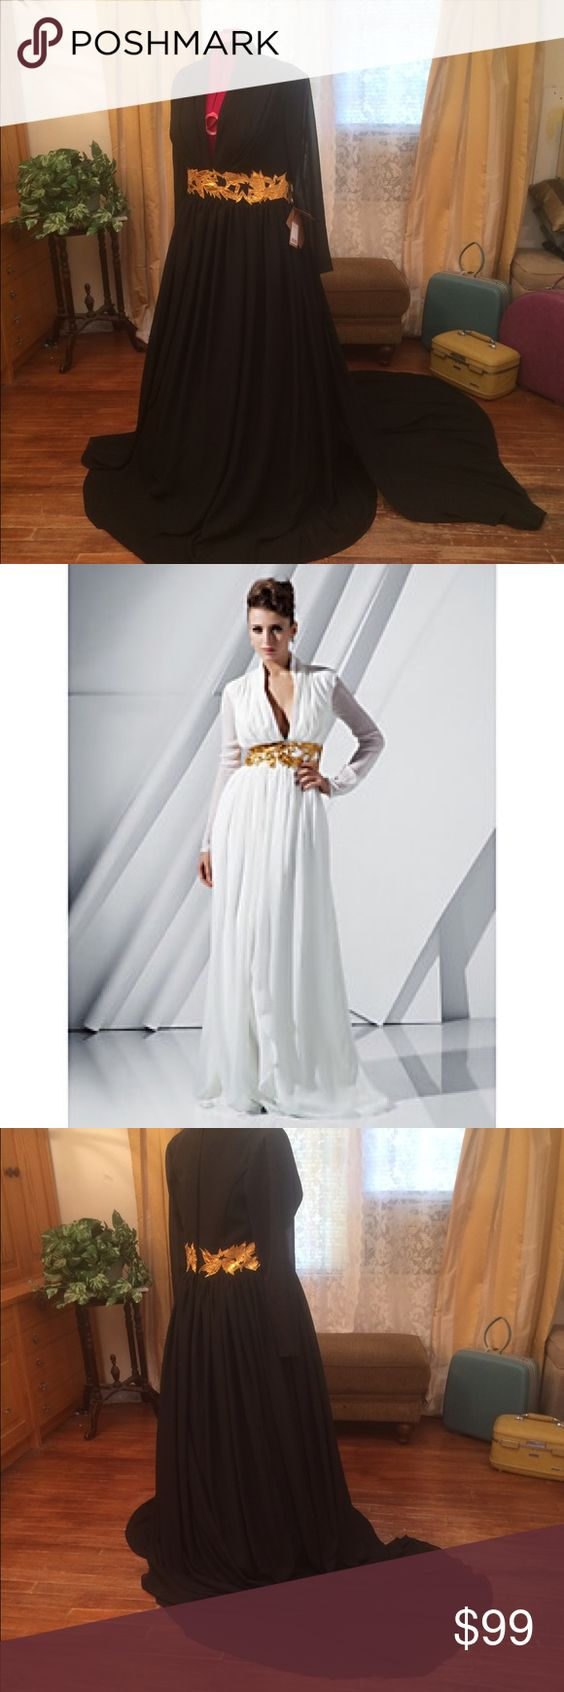 """NWT Grecian Formal Chiffon Dress train gold leaves NWT Unique long gothic formal- Grecian.  Gold leaves at the waist.  Long court flowing train in the back.  Chiffon with sheer leaves and omg-look at the deep V in front.  Very sexy.  Org $400 size 18W. Measurements:  Bust 45""""- Waist 38""""-Length 63""""-Price is firm-discounts available by bundling. Low ball offers don't show respect-result in blocks.  I don't model clothing. Message with questions. Non smoking home. -no returns. Thank you…"""